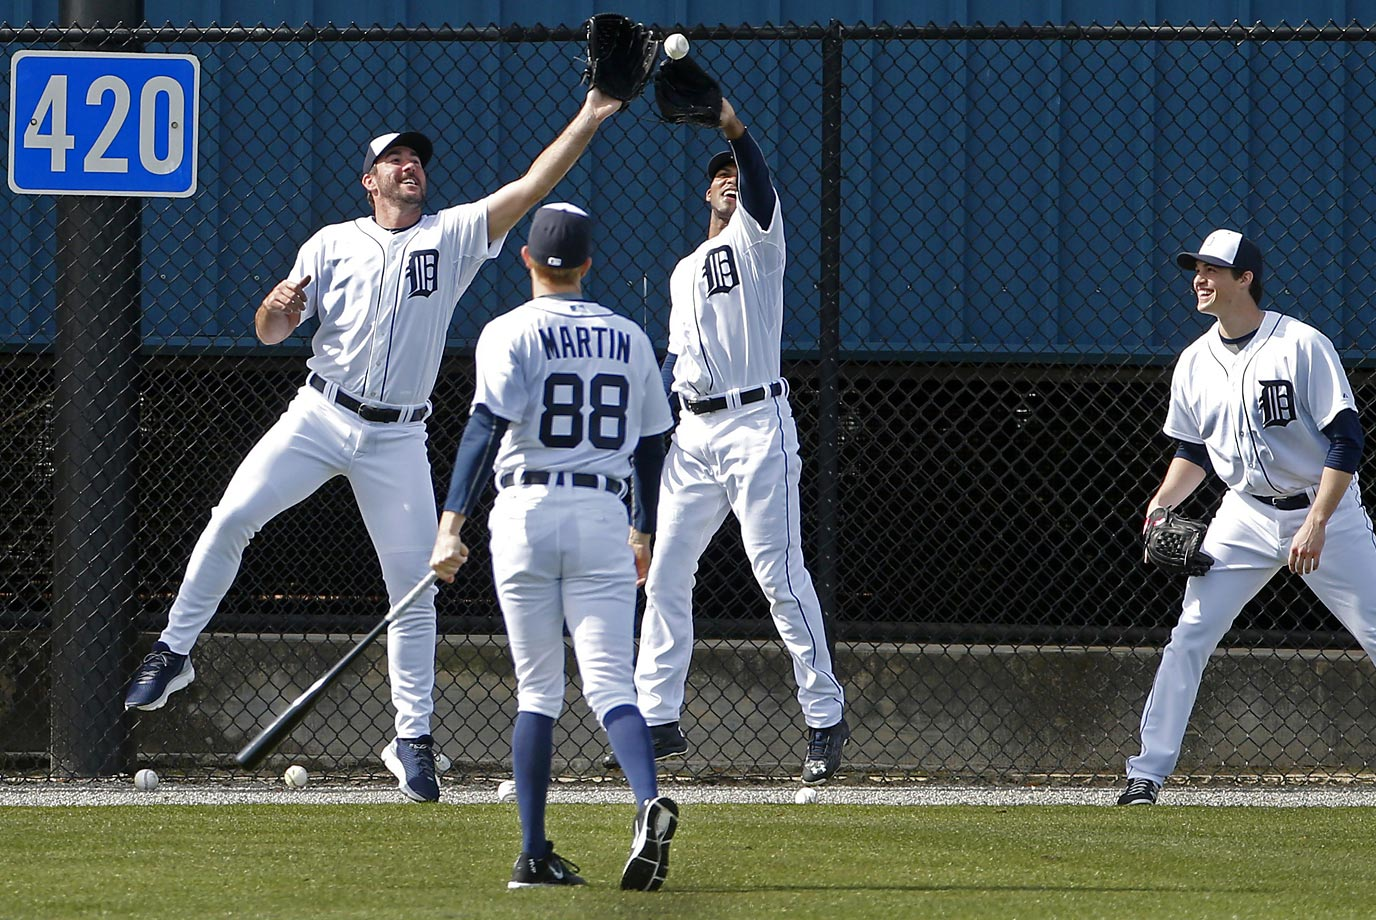 Detroit Tigers pitchers Justin Verlander, left , and Al Alburquerque, center, go after a ball hit by coach Matt Martin during a pepper game near the outfield wall, part of a baseball spring training workout.